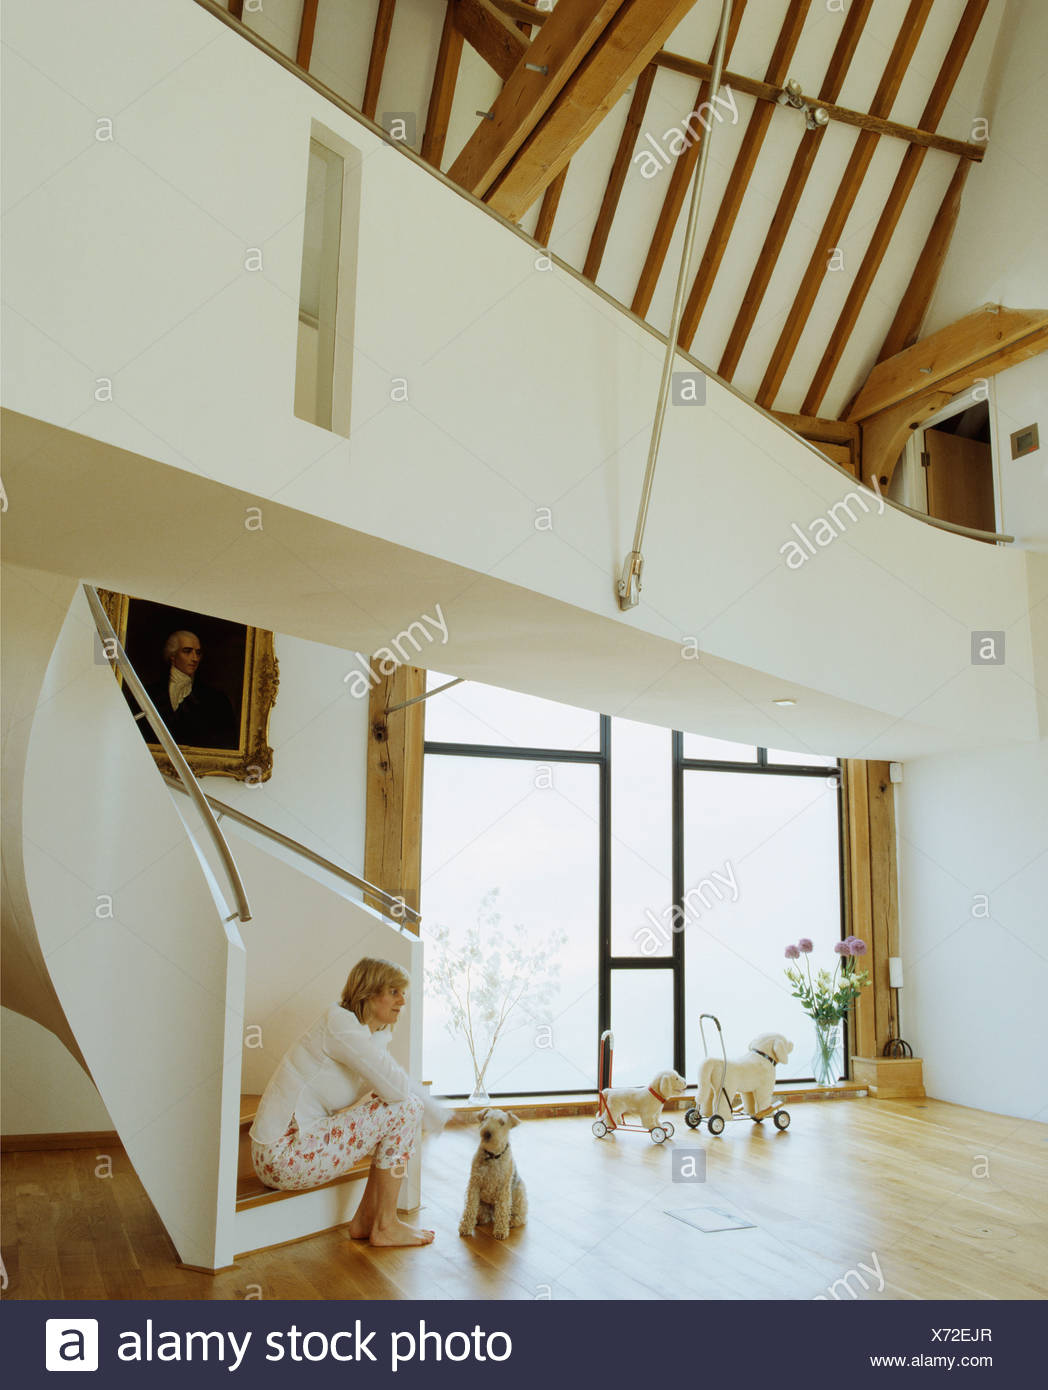 Woman Sitting On Staircase With Dog In Hall In Modern Country Barn  Conversion With Gallery Landing